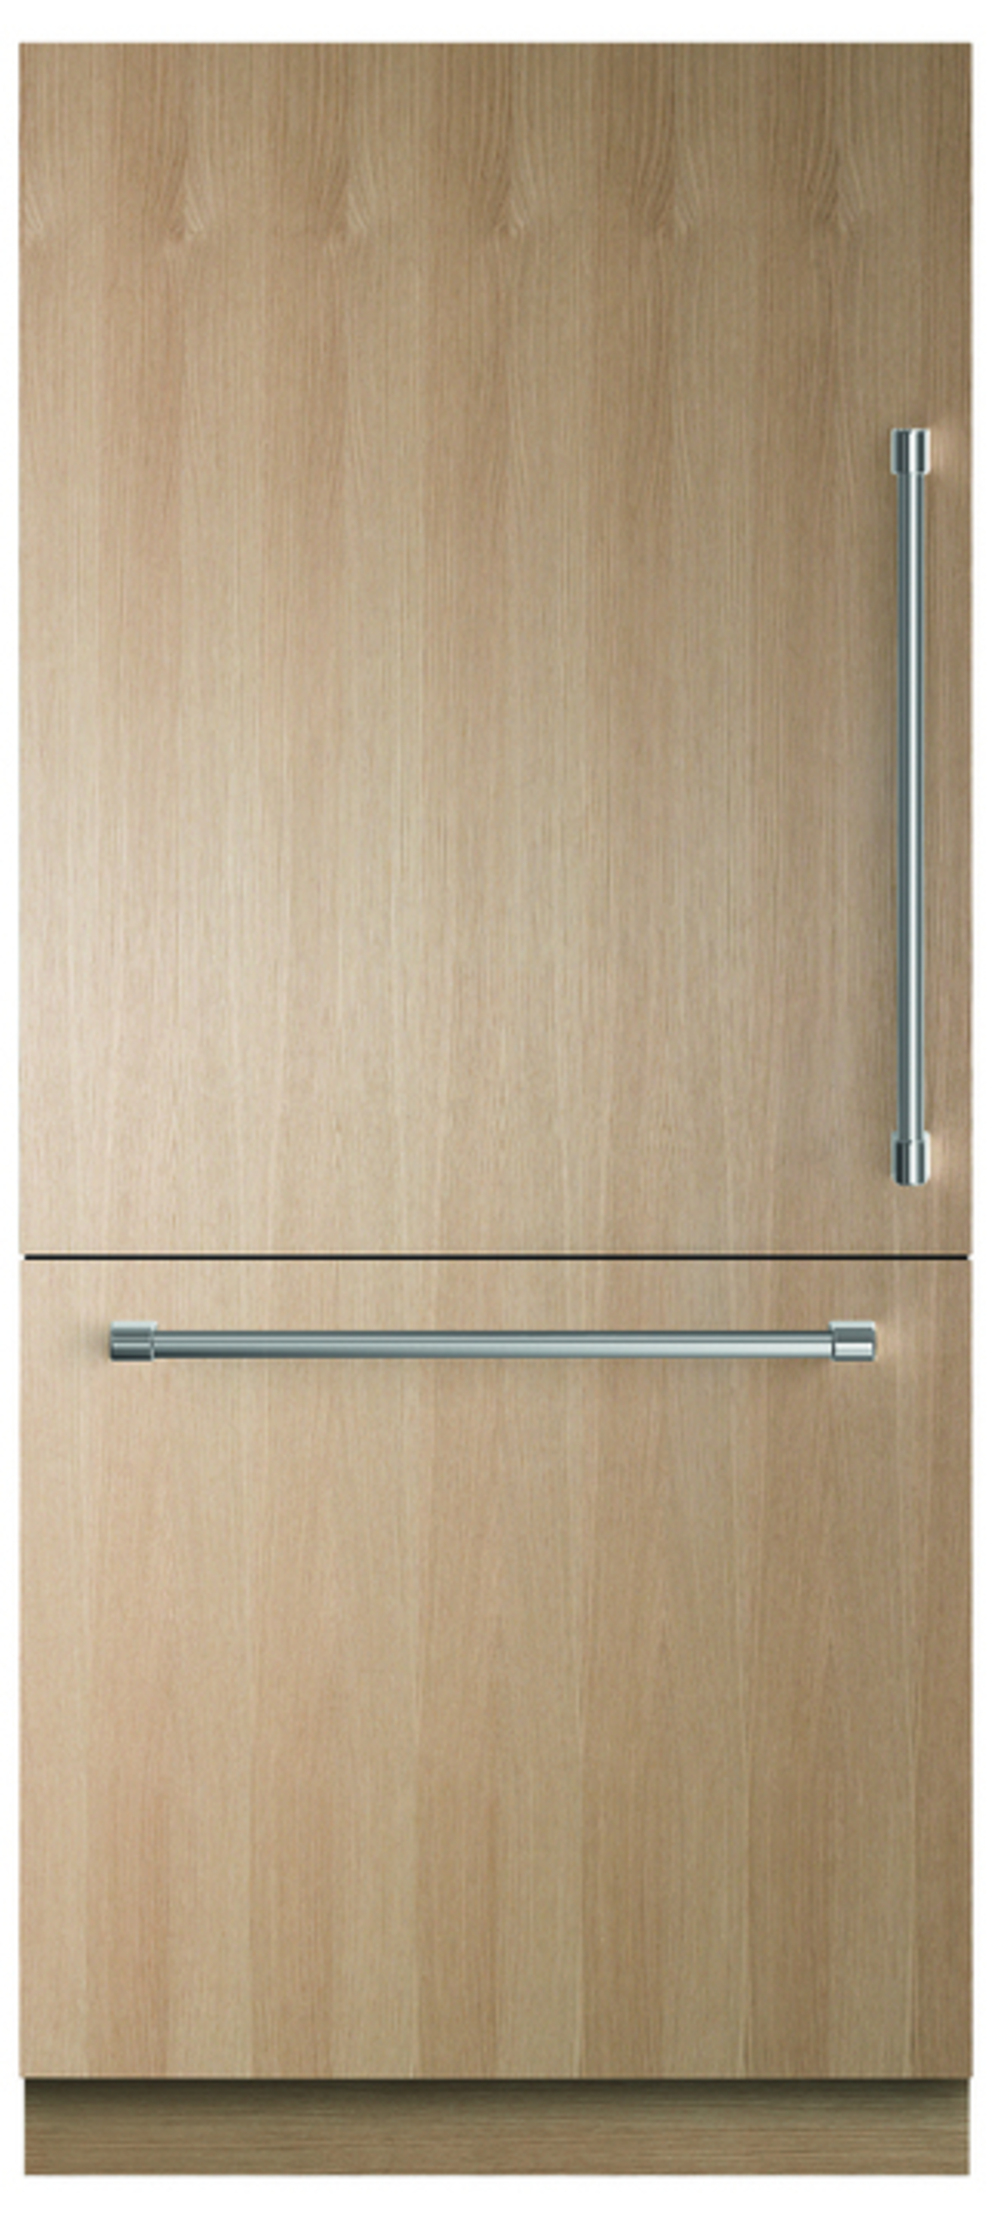 Fridges DCS RS36W80LJC1